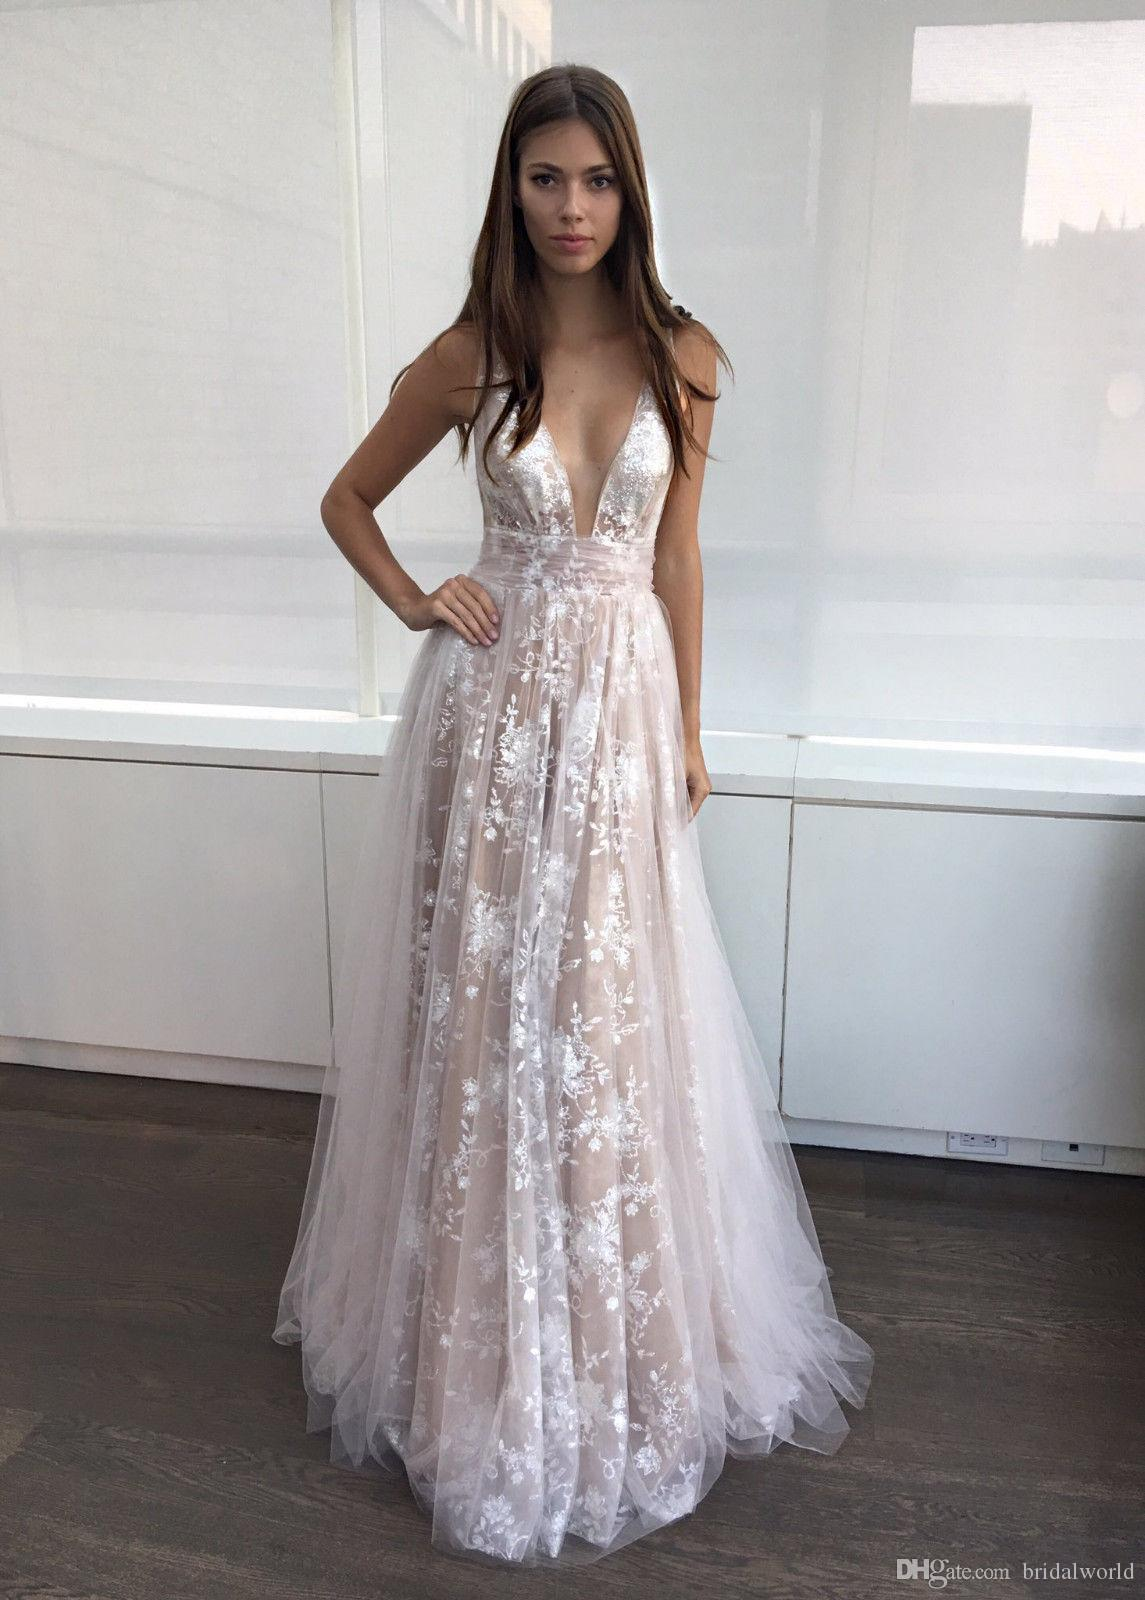 734c2b81aa Sexy Evening Dresses Plunging Neck Lace Prom Dress with V Back Formal Dress  A-line White Lace Champagne Custom Sexy Evening Dresses Plunging Neck Lace  Prom ...